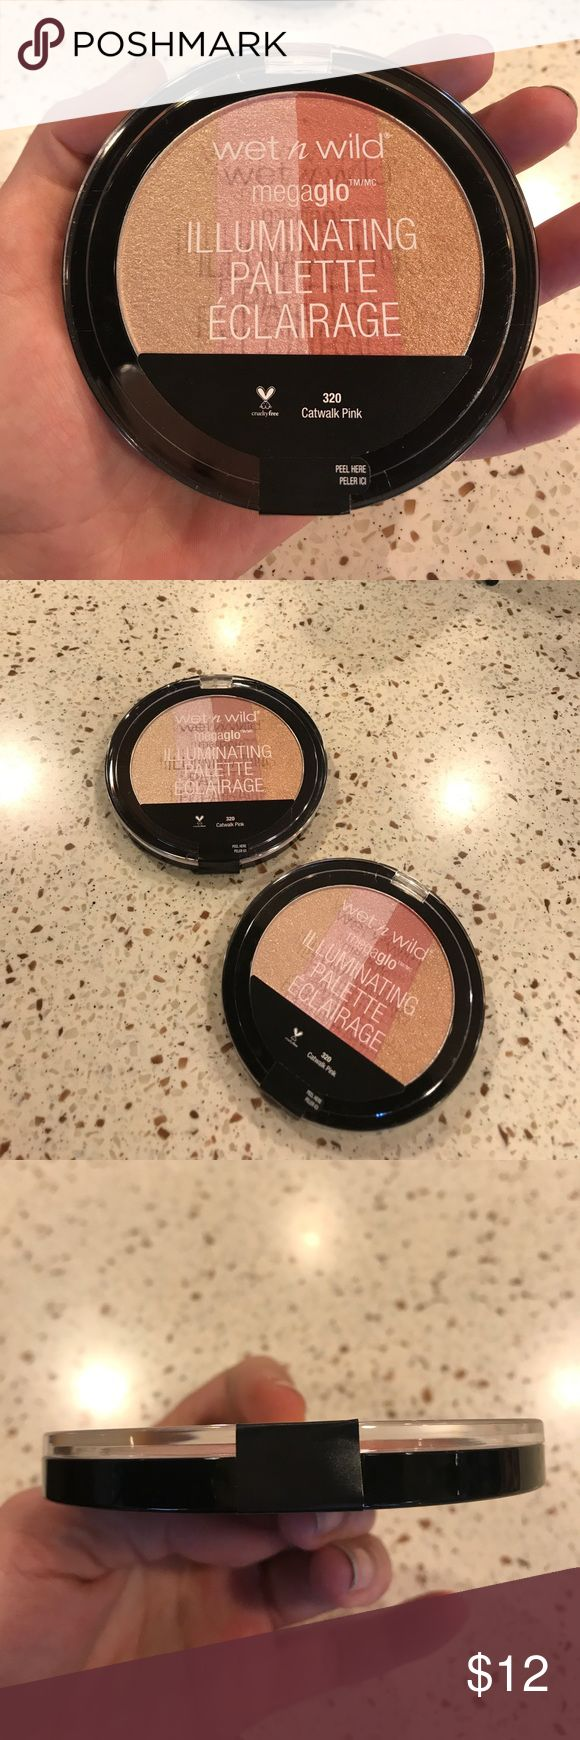 Wet n' Wild Jeffree ⭐️APPROVED!! Hi light THE ONE!!!  I saw these FINALLY in stock at my local good store and bought all 3 left for y'all!!  These are featured in Jeffree ⭐️'s YouTube videos and he raves about them.  Size is huge so you get a giant amount of product, look at pic, it's a very large pan because *shocker* it is made in the SAME FACTORY AS THE JEFFREE ⭐️ LINE?!?!  MMMKAAAY...  honey, grab yours because these ain't never in stock!!!;) Also I heard the new Eclipse highlight sucked…